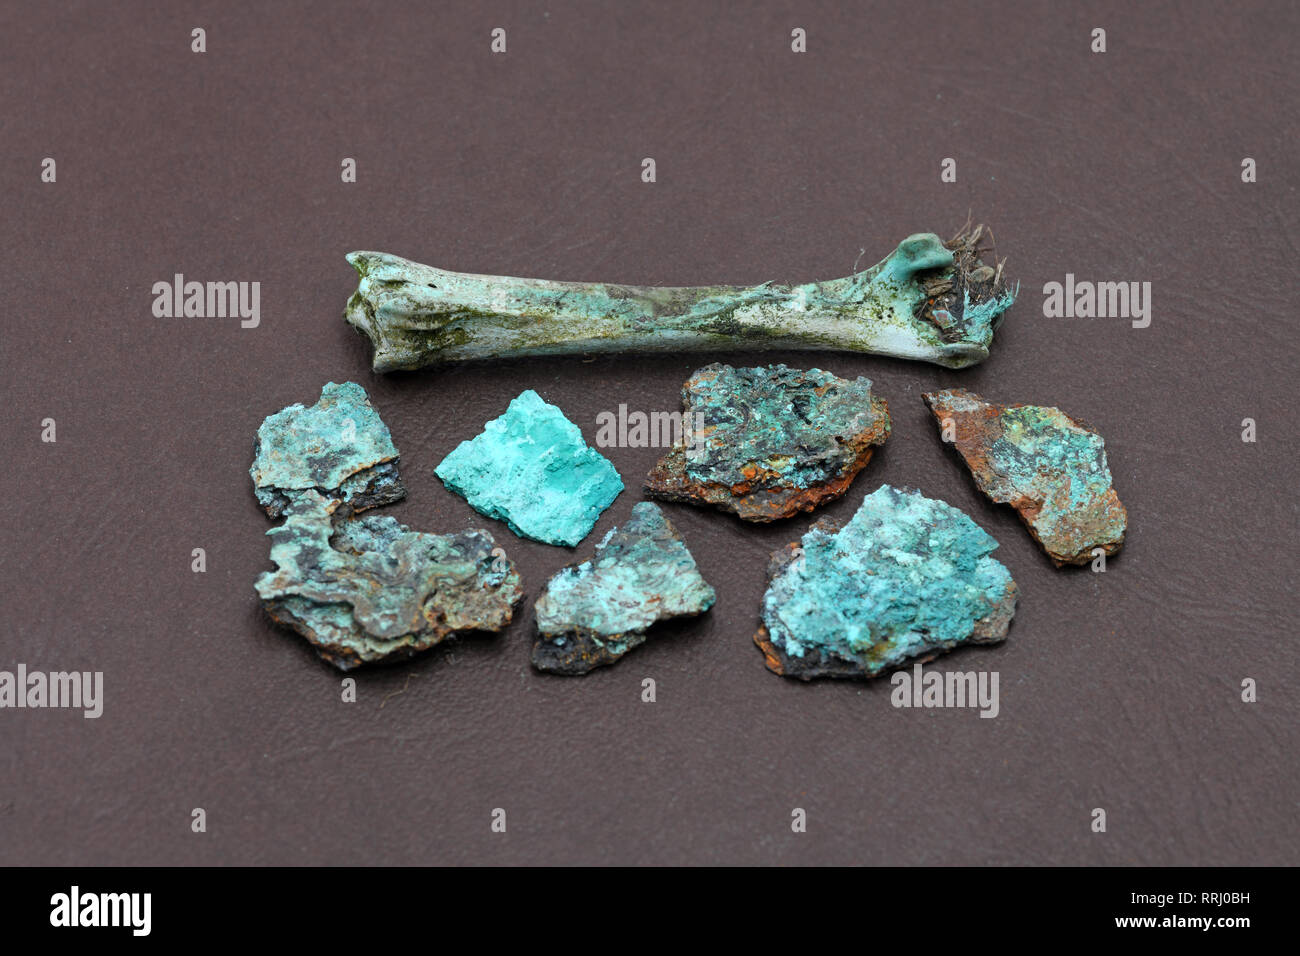 Samples of a bird bone and pieces of metal that have been impregnated with copper waste products that have leached into the soil - Stock Image